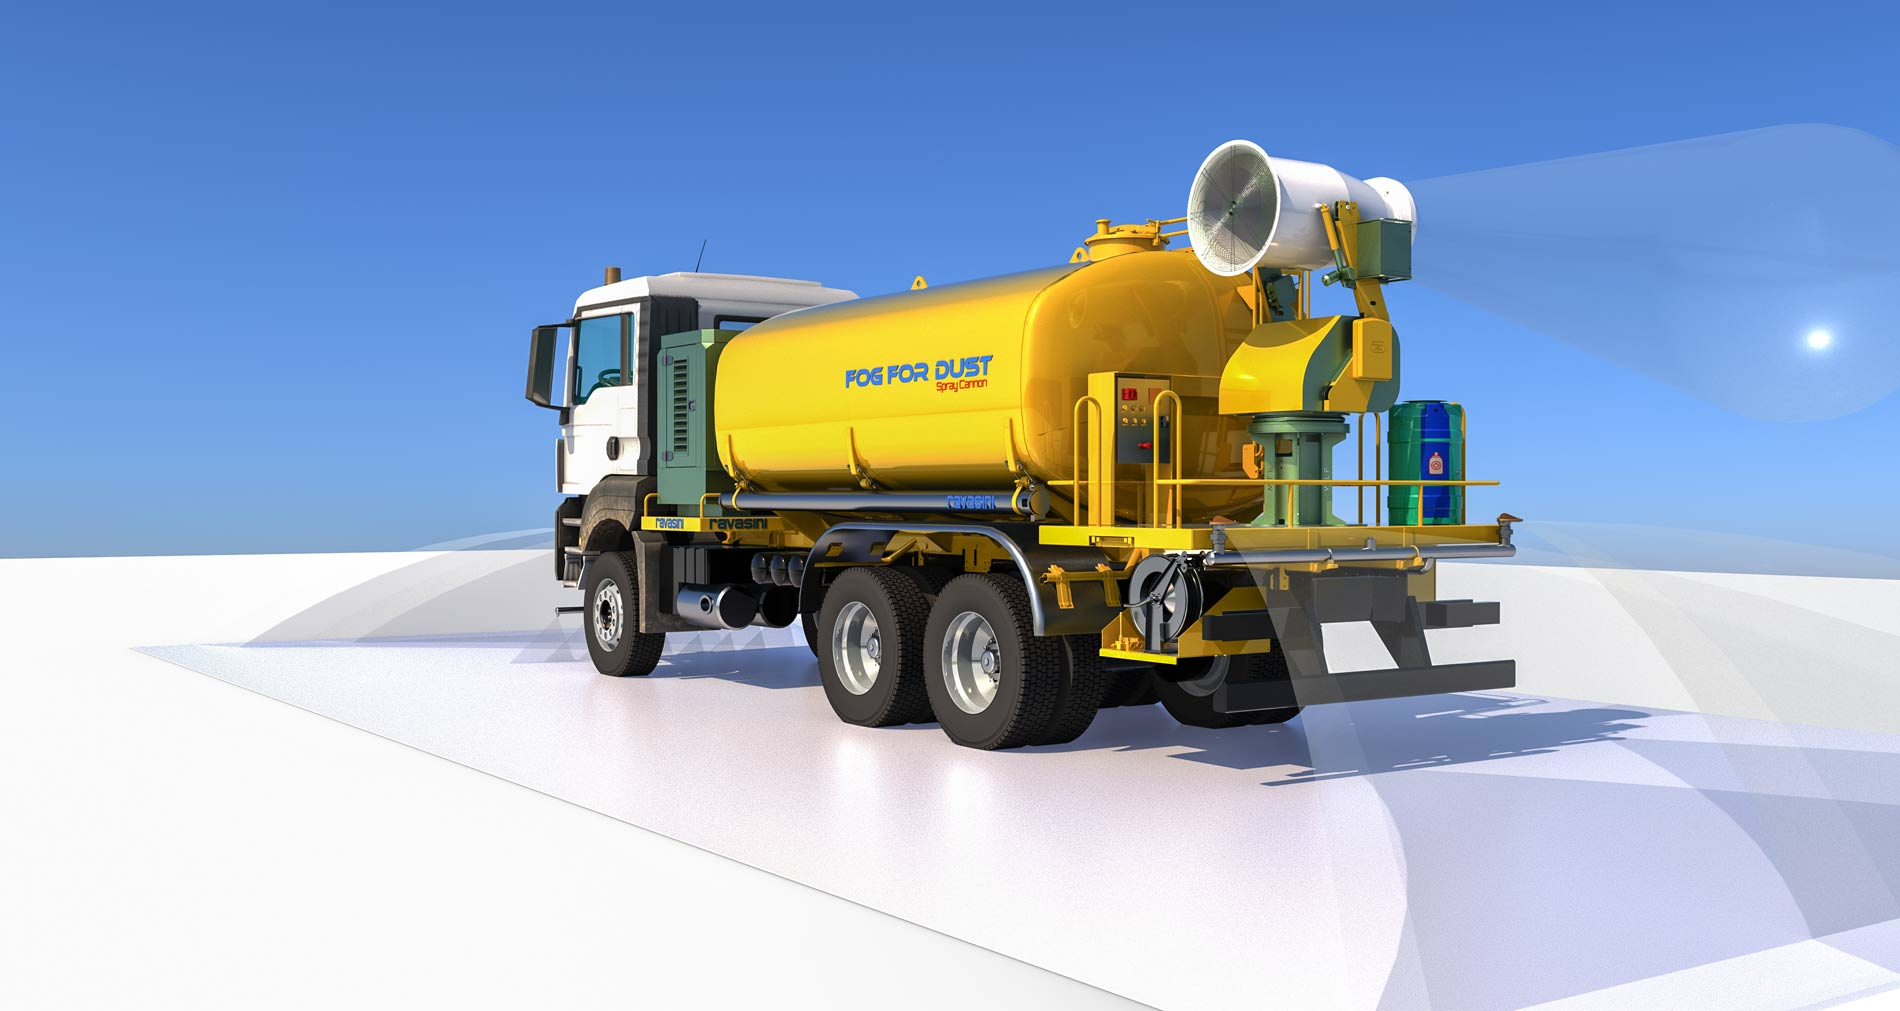 Ravasini_fog_for_dust_tank_truck